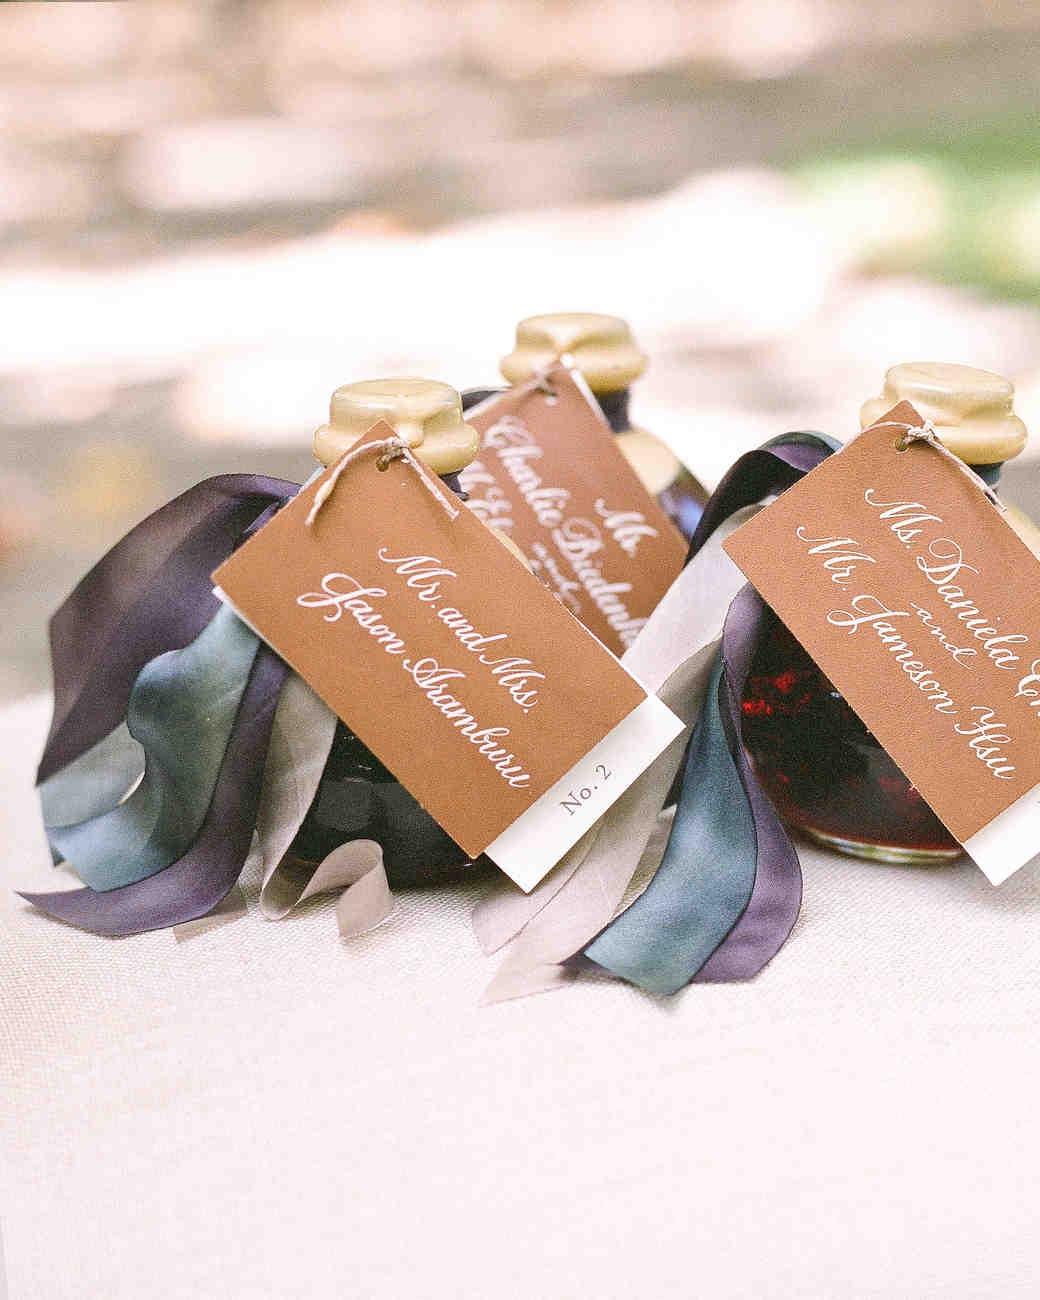 Negronis Bottles With Leather Tags and Blue Ribbon